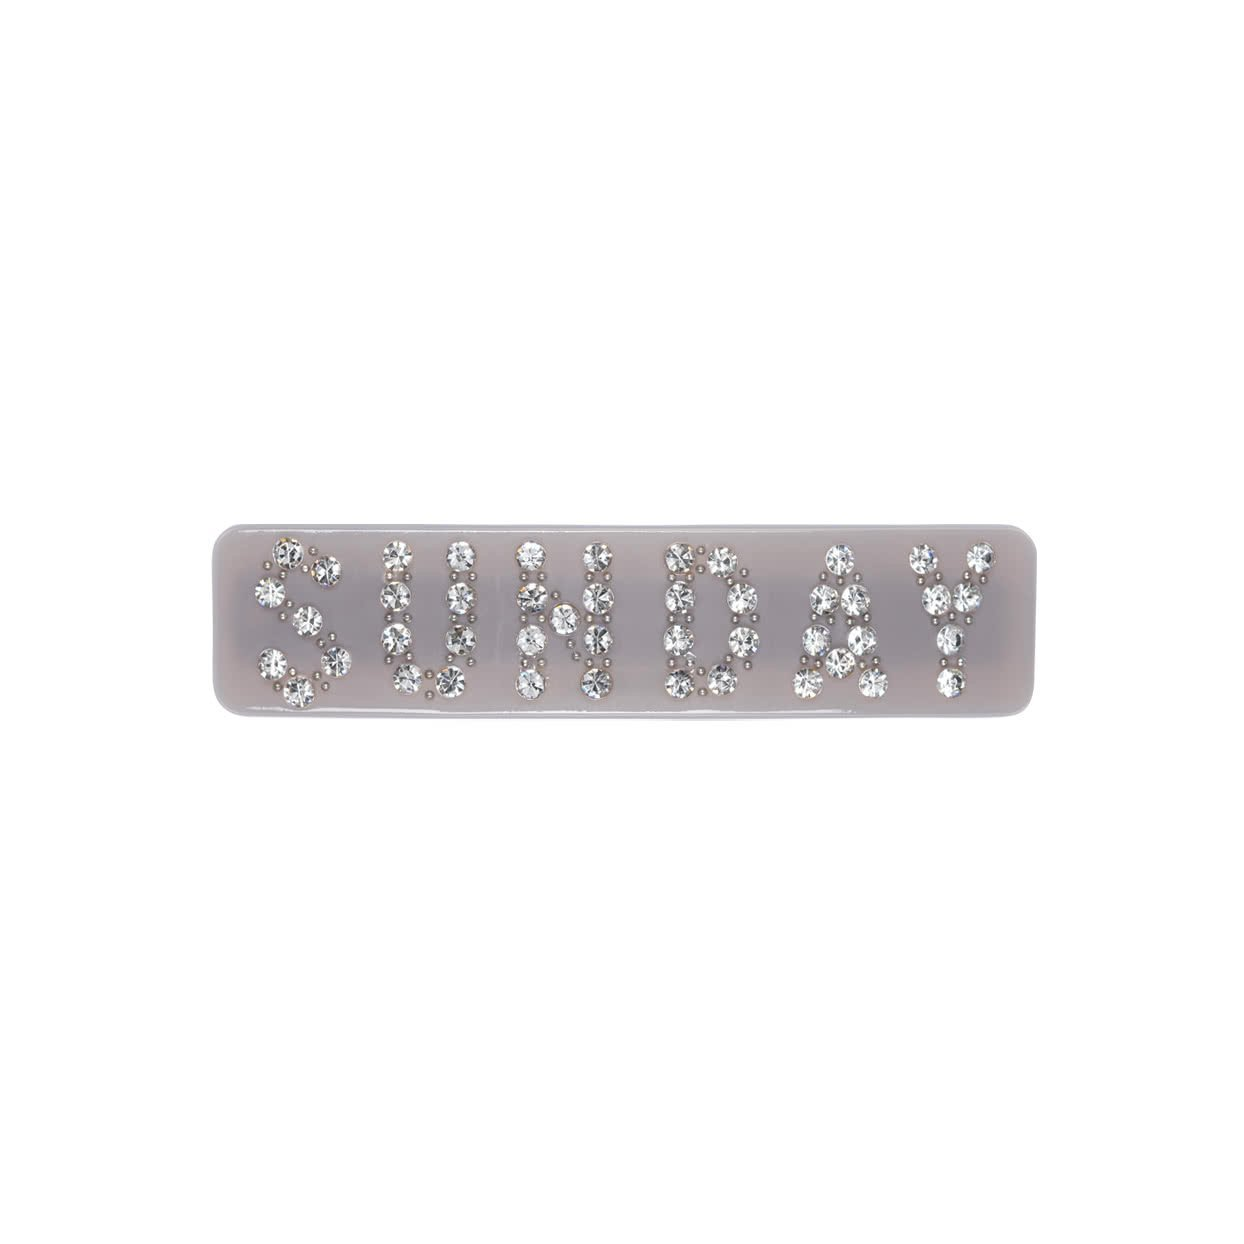 Image of Hair Barrette with crystals - Lilac / Sunday